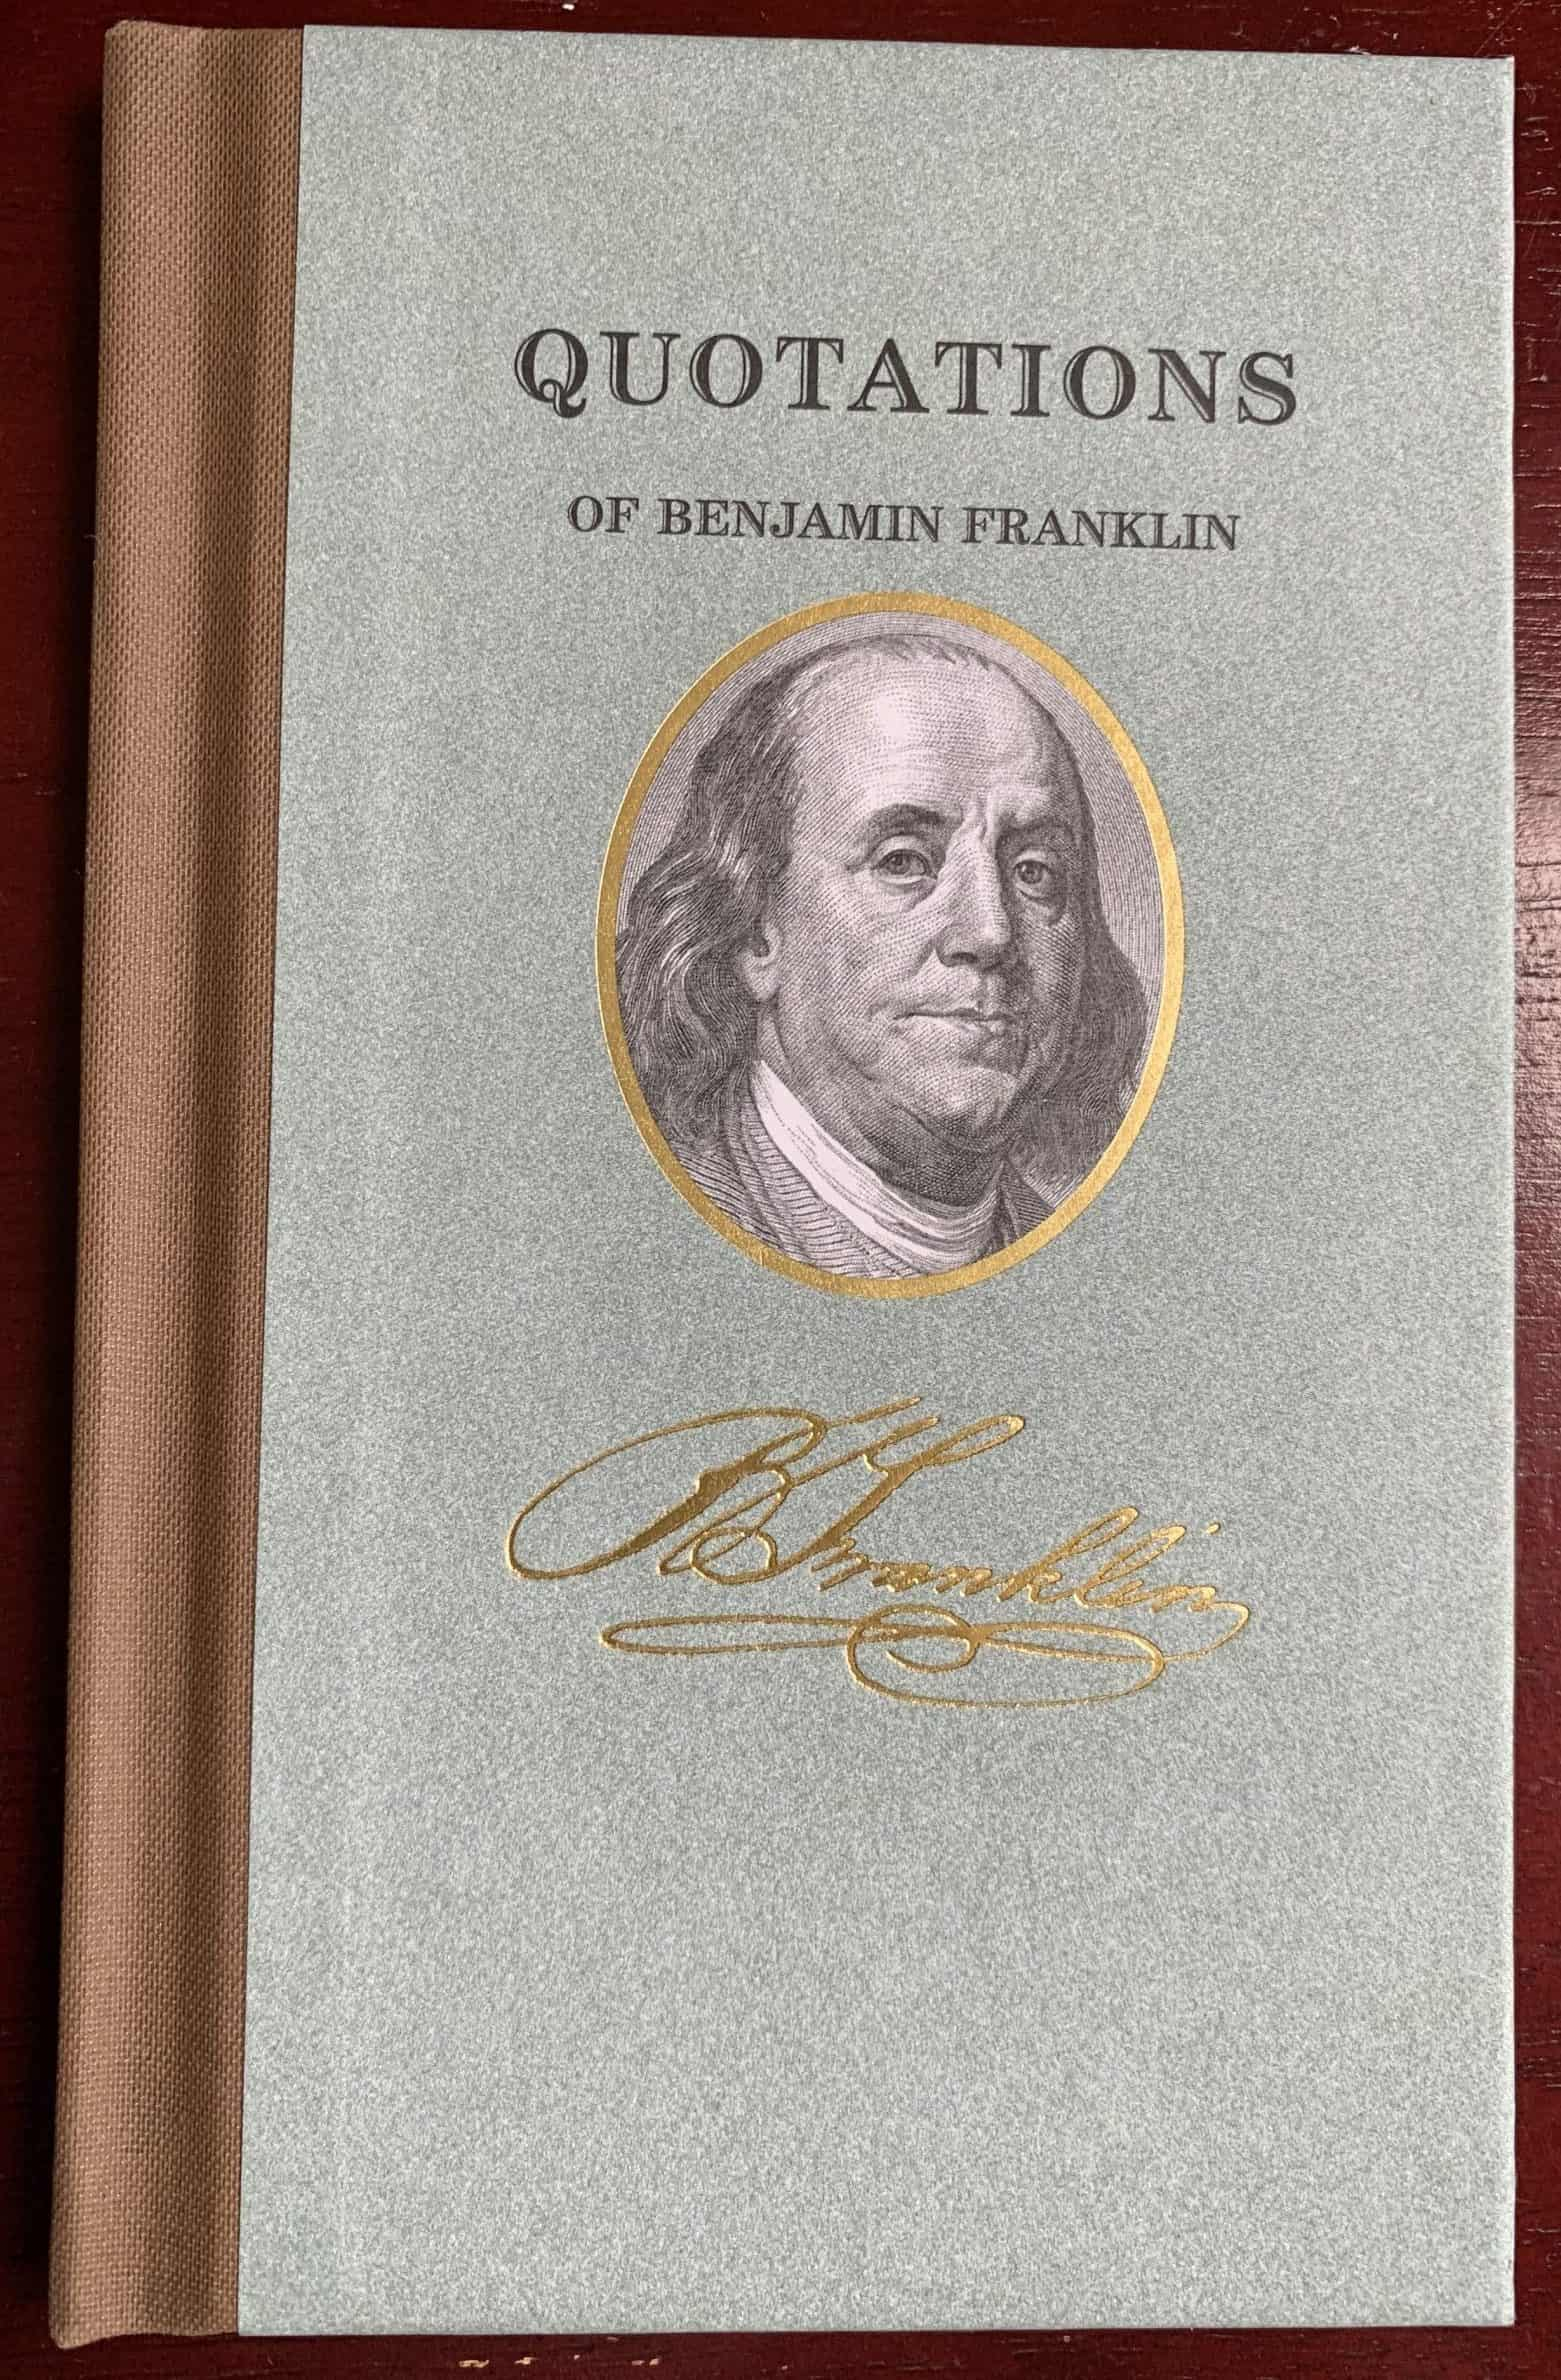 Quotations of Benjamin Franklin